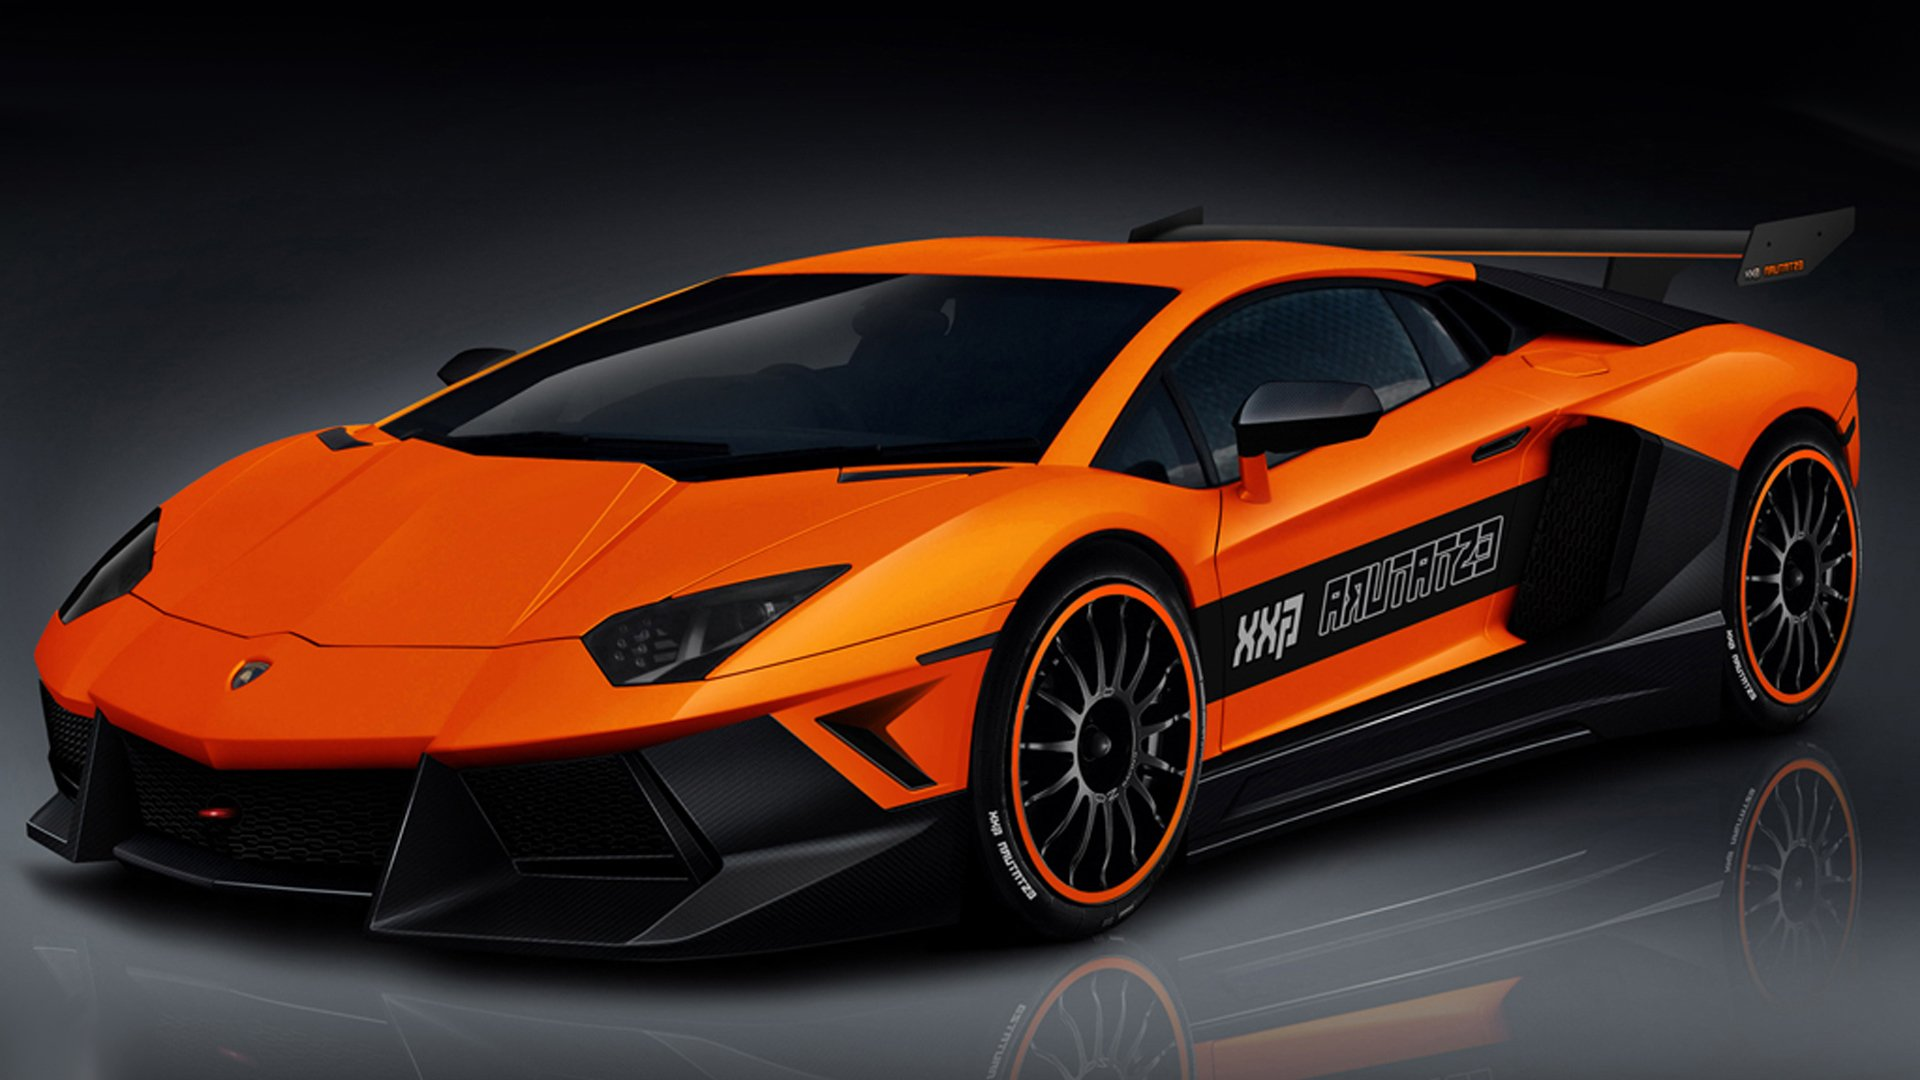 337 lamborghini aventador hd wallpapers | background images